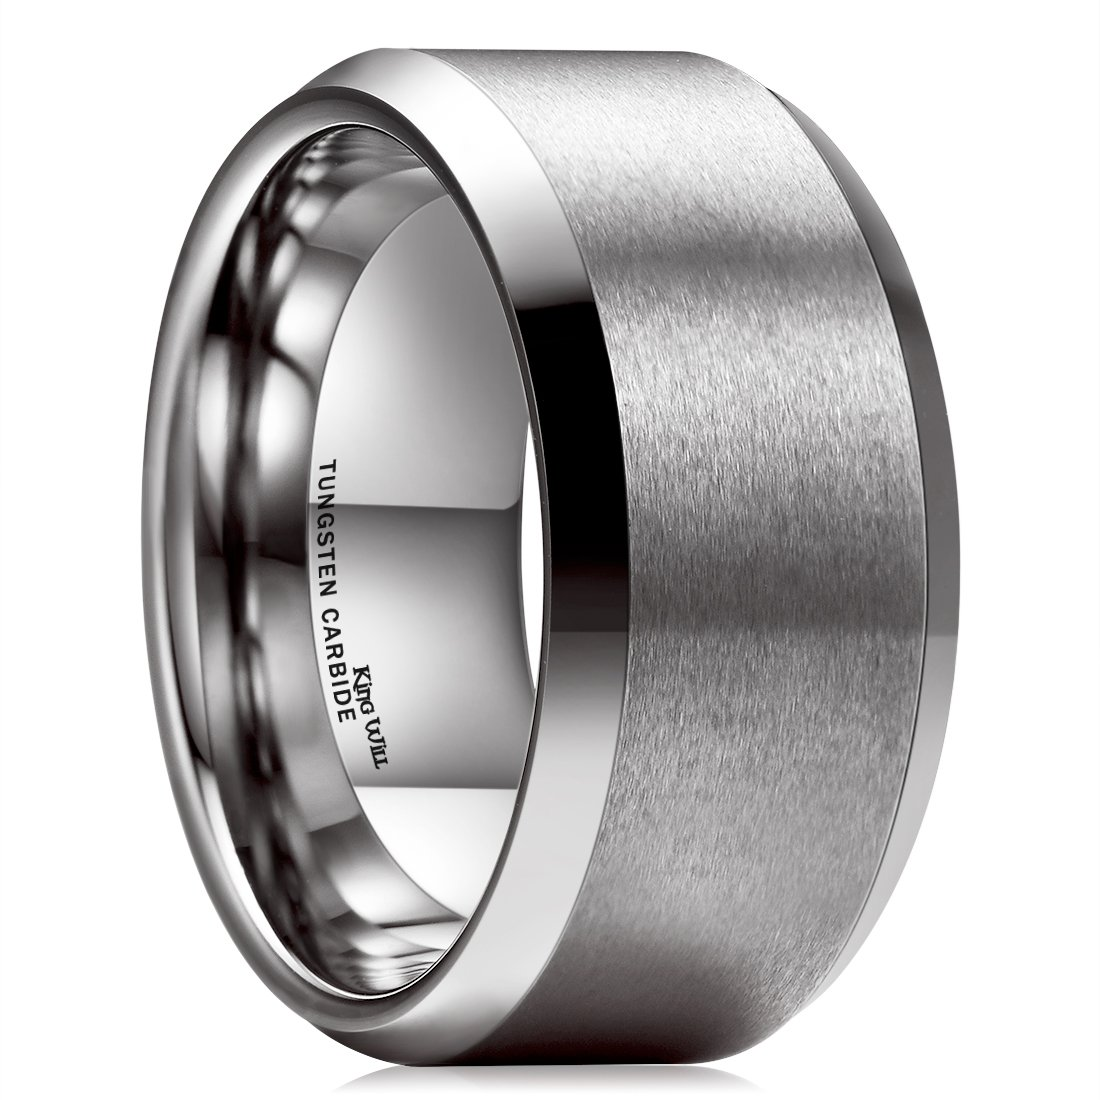 King Will BASIC 10mm Tungsten Carbide Ring for Men Matte Polished Wedding Engagement Band Comfort Fit (13.5)